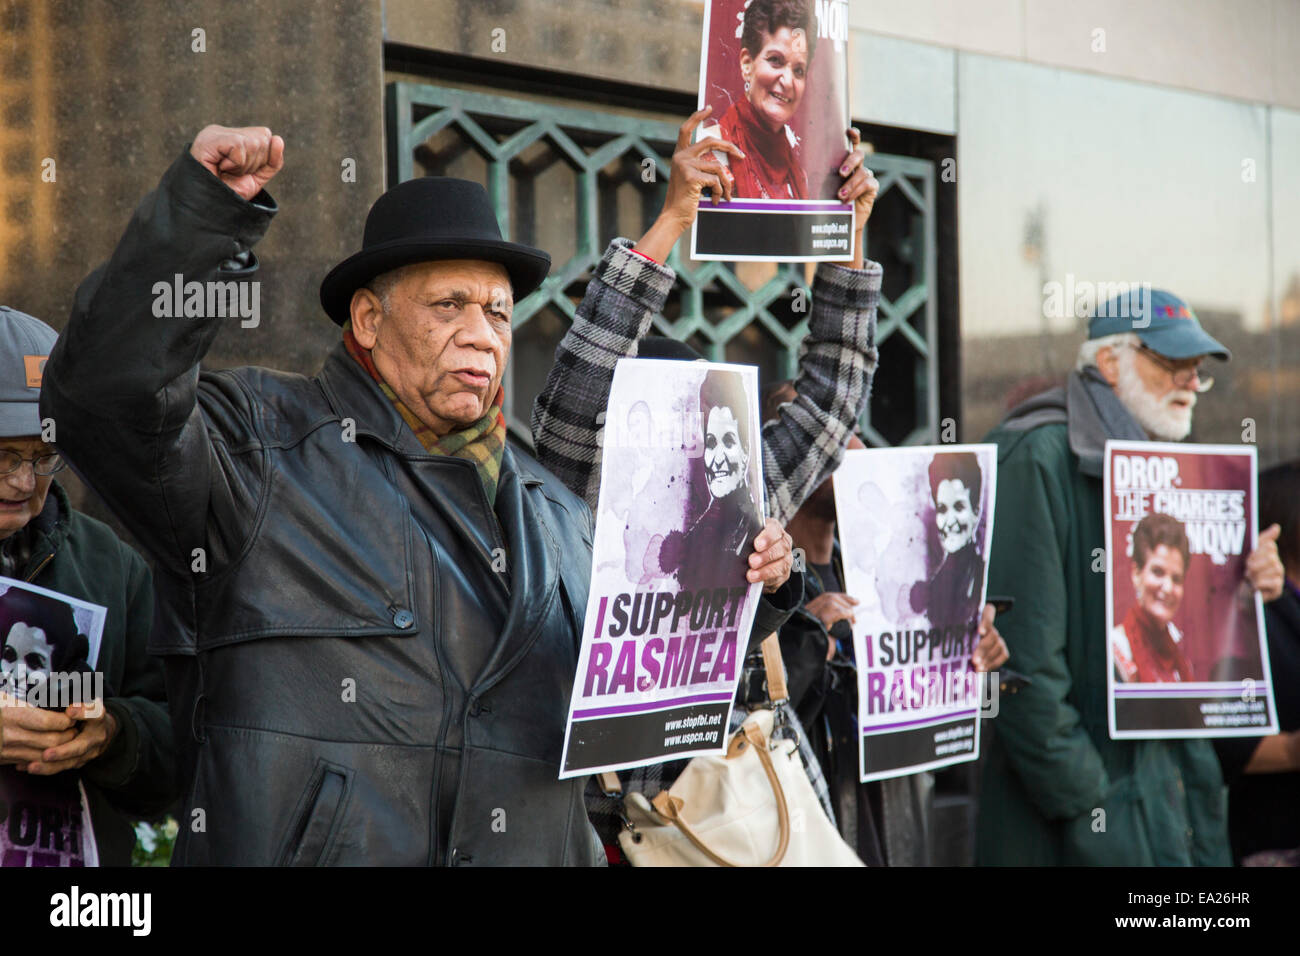 Detroit,  Michigan, USA. 5th November, 2014. Supporters of Palestinian-American activist Rasmea Odeh hold a vigil Stock Photo